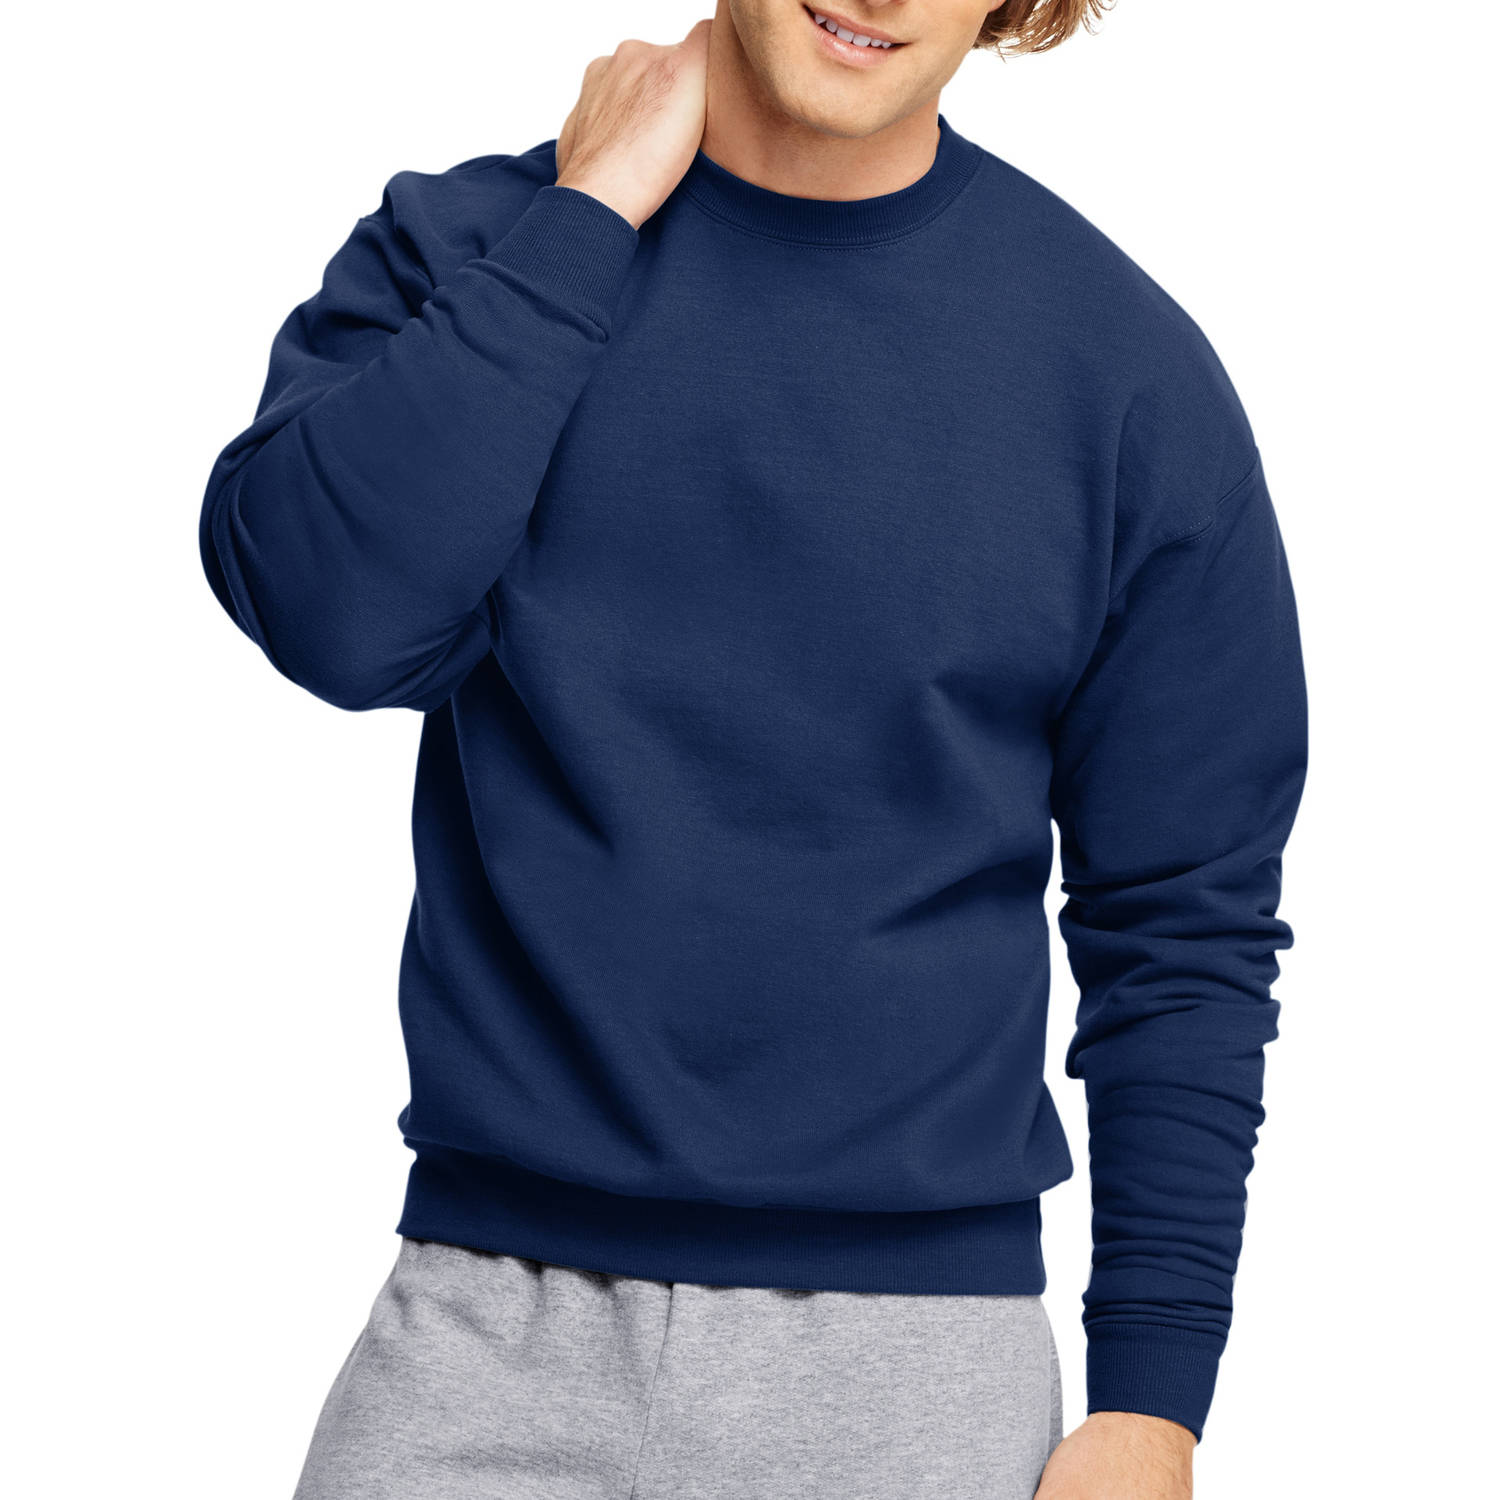 Hanes Men S Ecosmart Medium Weight Fleece Crew Neck